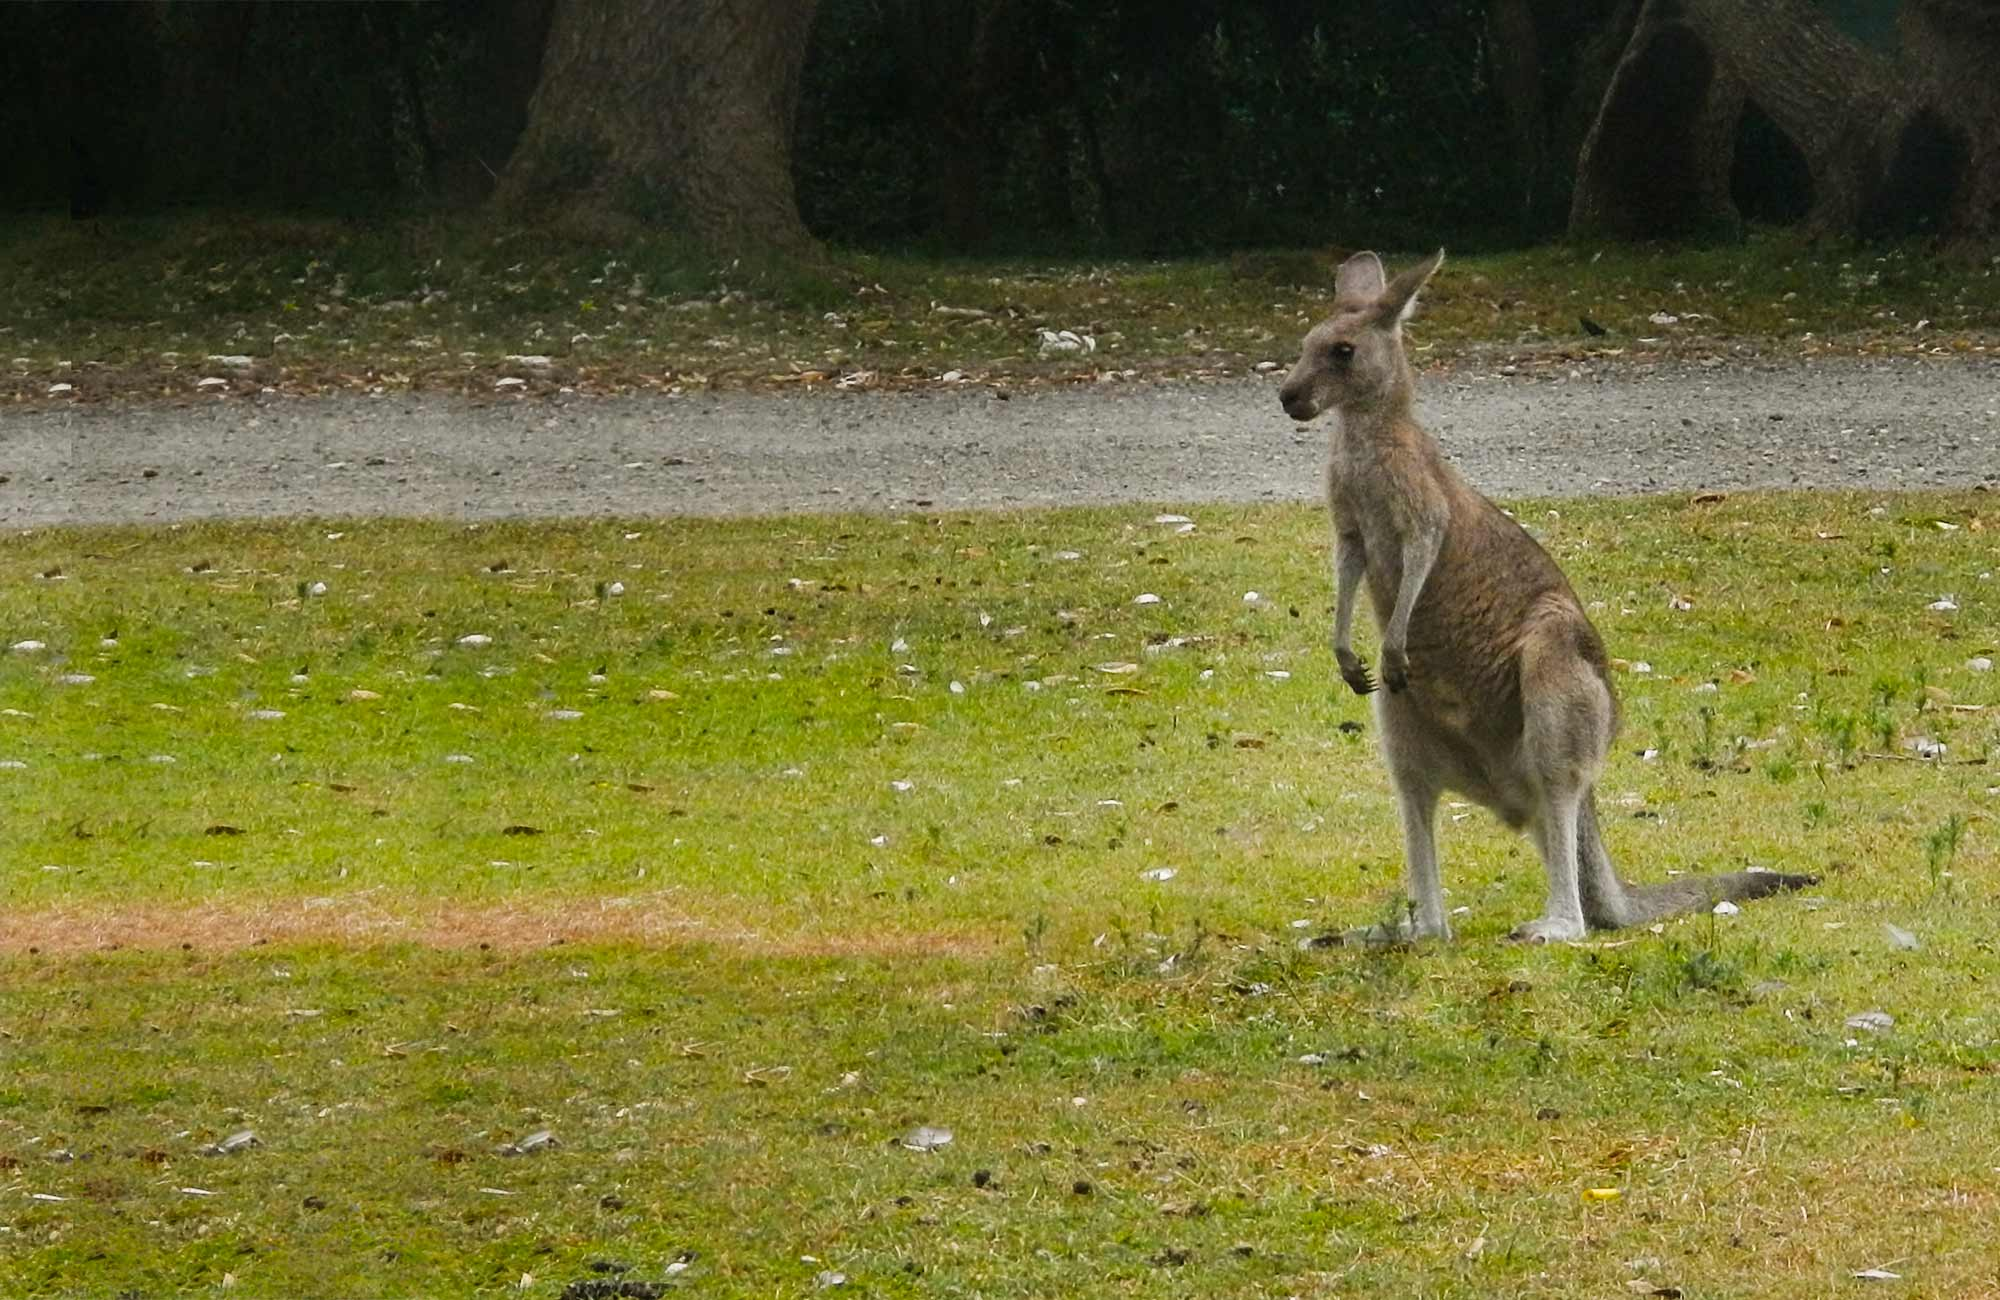 Kangaroo. Photo:Debby McGerty